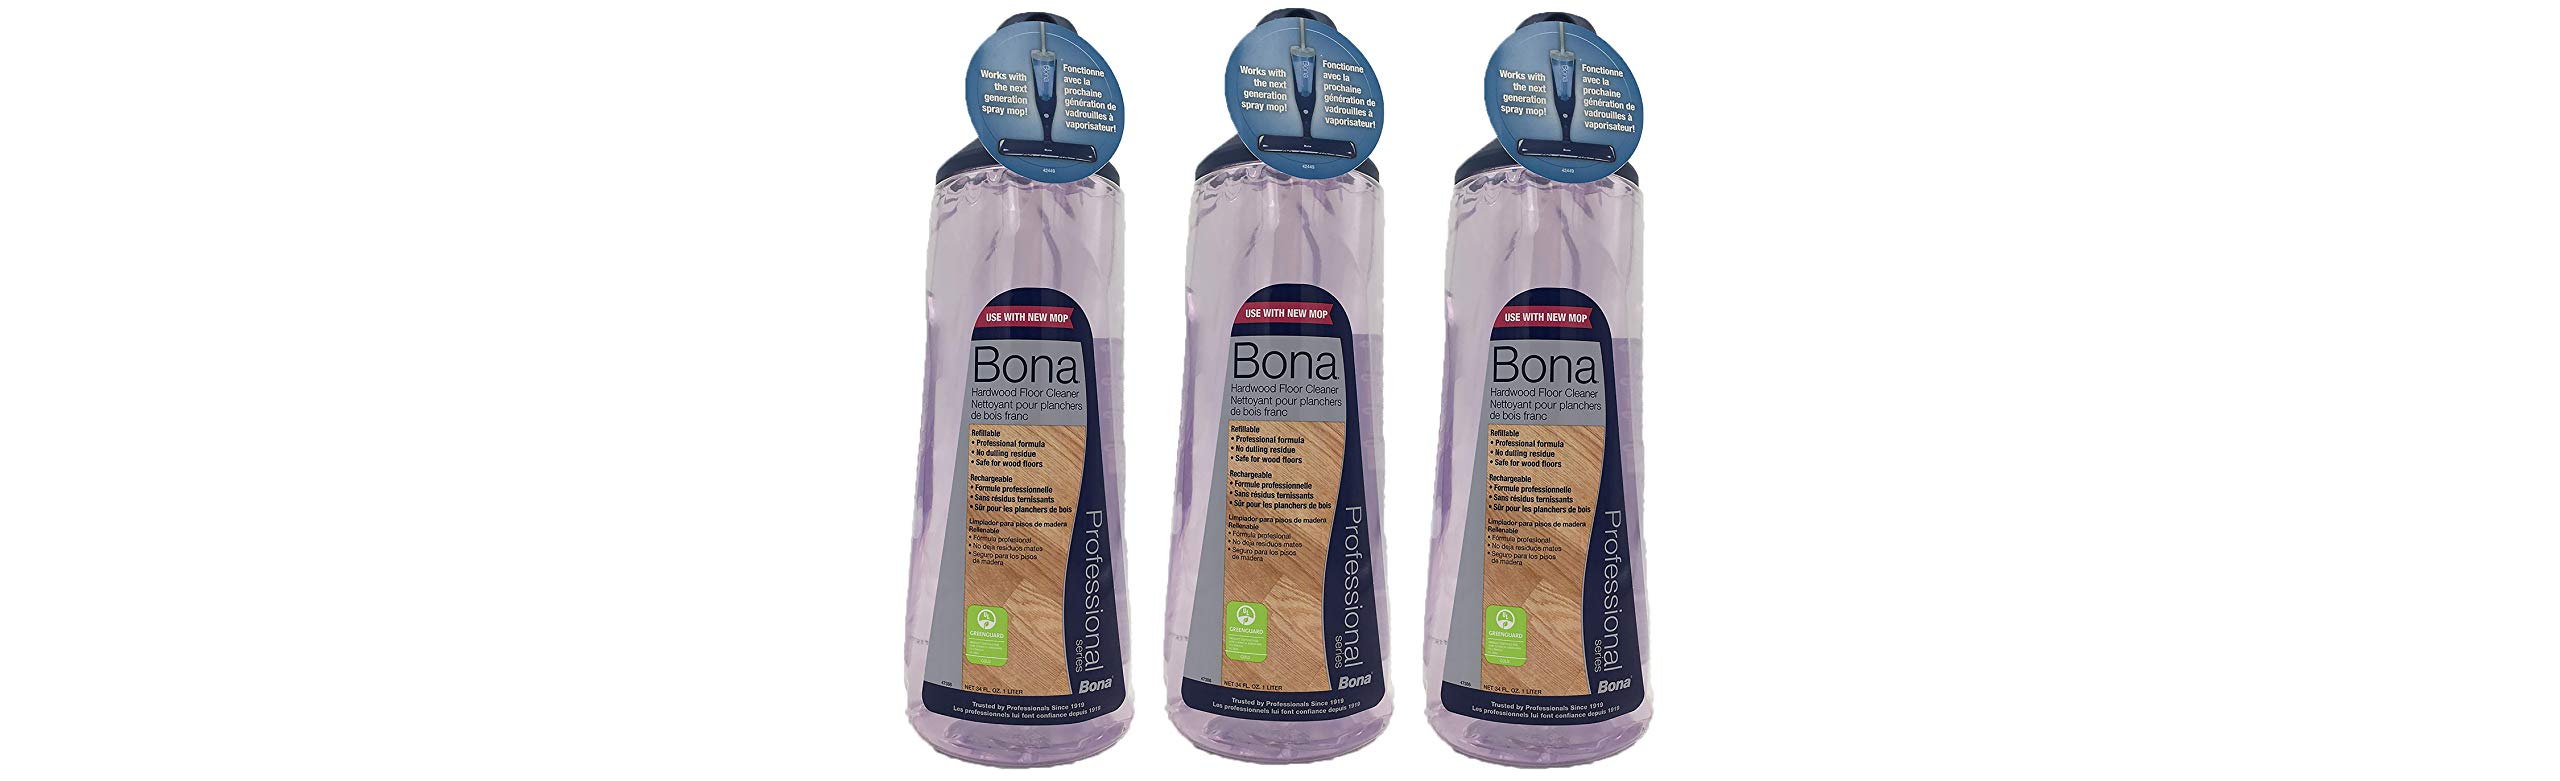 Bona Pro 33 Oz Hardwood Floor Cleaner Refill Cartridge, Premium No-Residue Formula, Ready-to-Use Cartridge For Bona Hardwood Floor Spray Mop, Cleans Dirty, Smudged Wood Floors (Pack of 3)